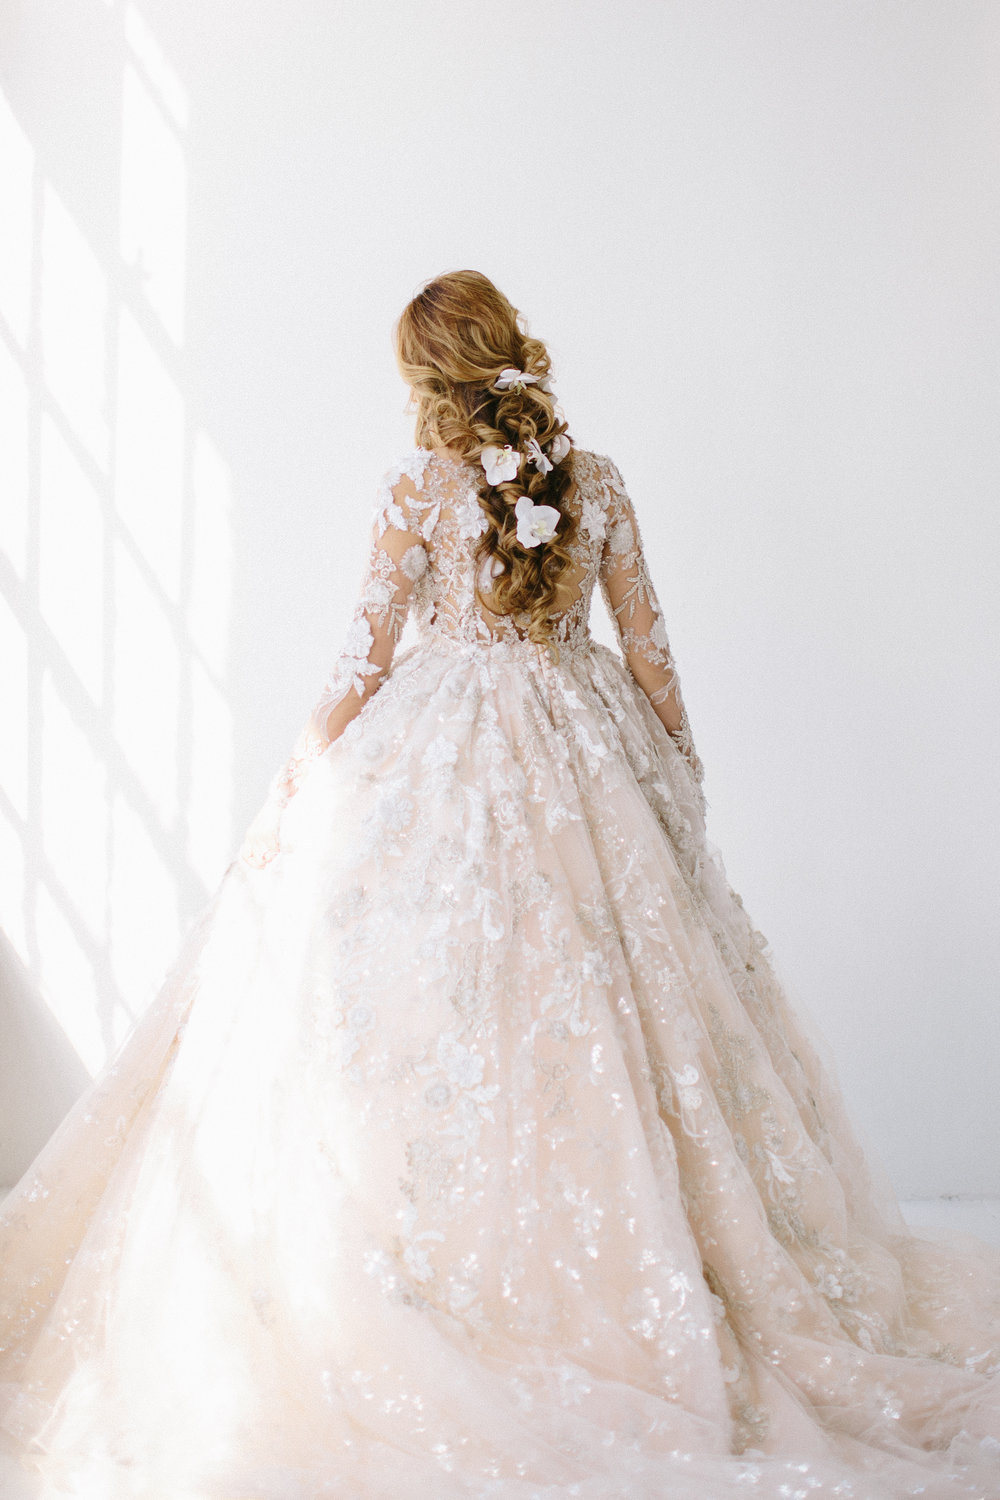 Stunning Bridal Hairstyle and Ysa Makino Lace Long-Sleeved Wedding Gown